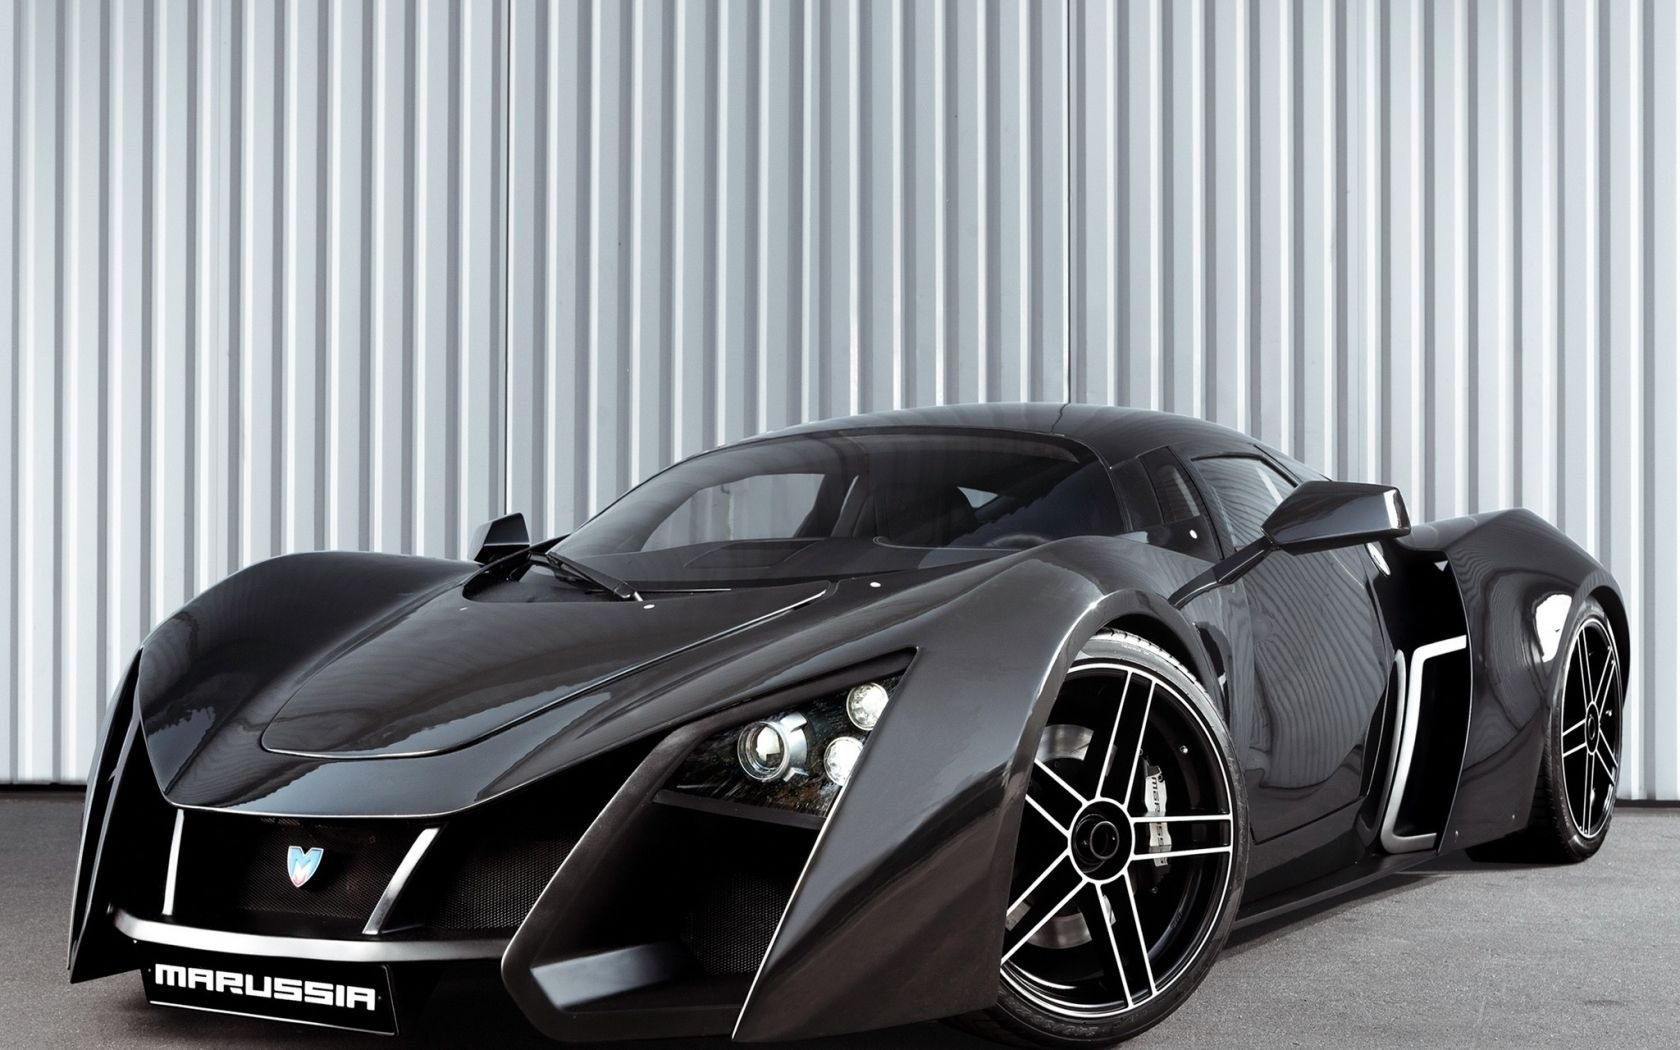 Polish Super Car Sports Cars Luxury Concept Cars Super Cars